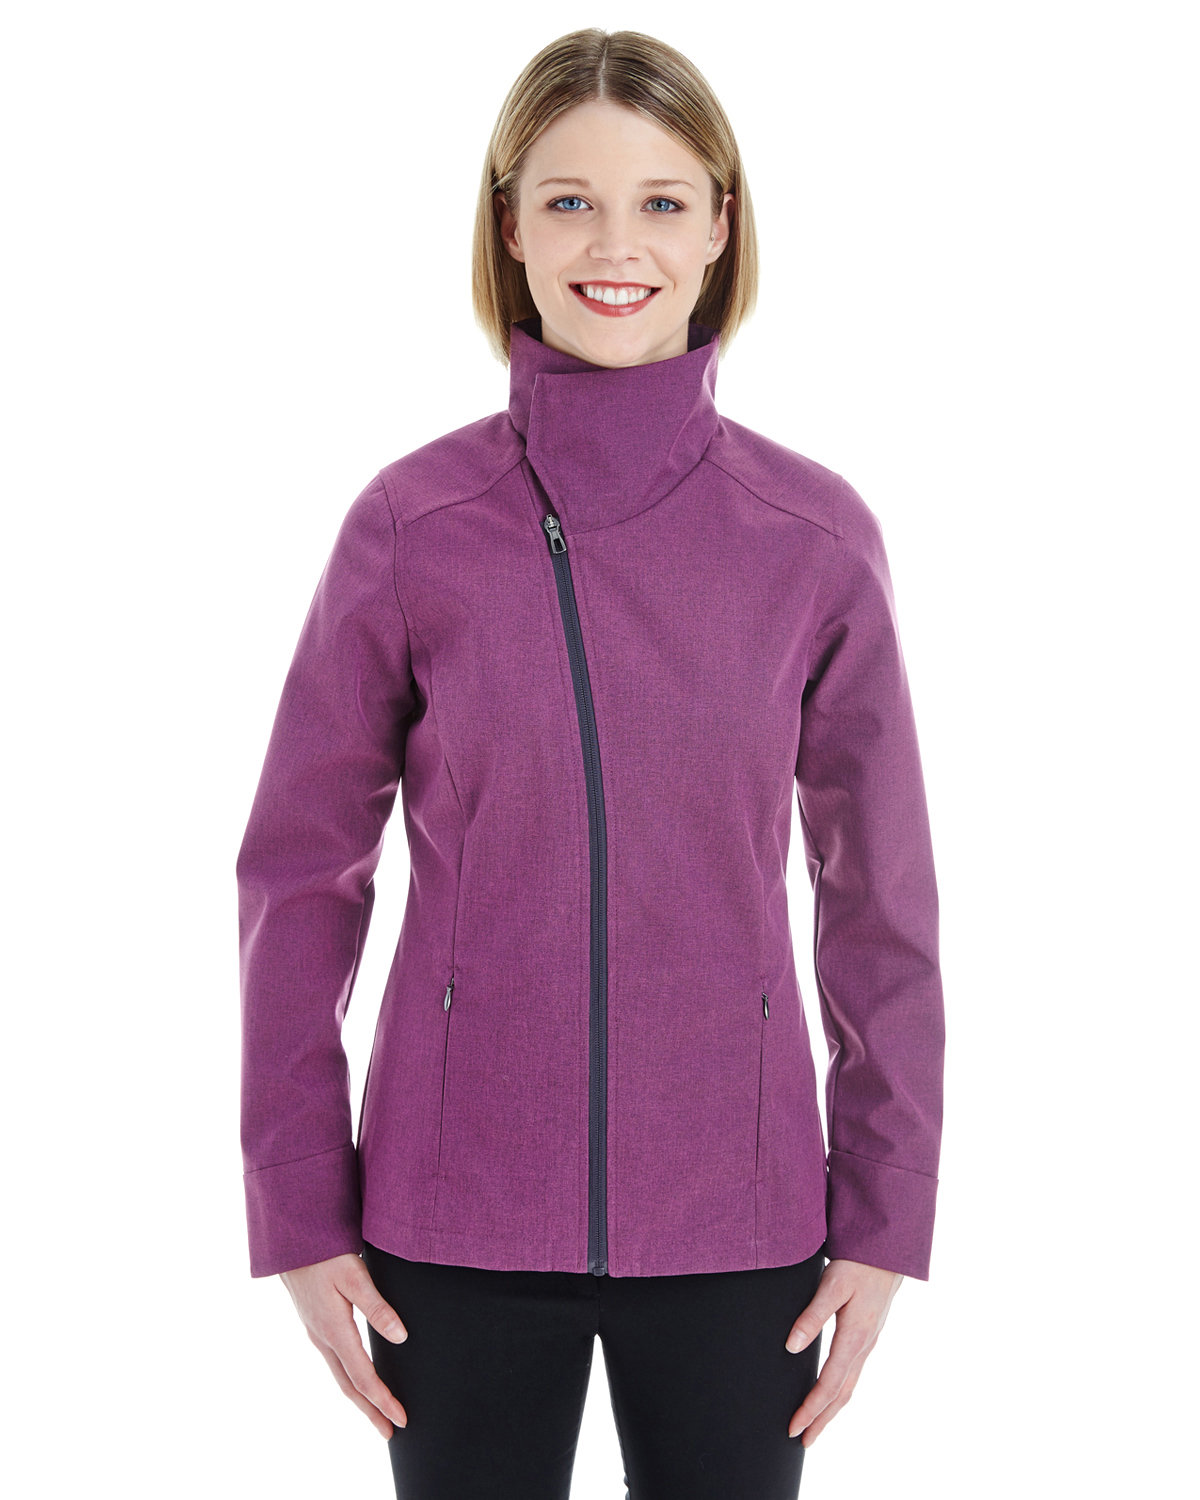 North End Ladies' Edge Soft Shell Jacket with Convertible Collar RASPBERRY